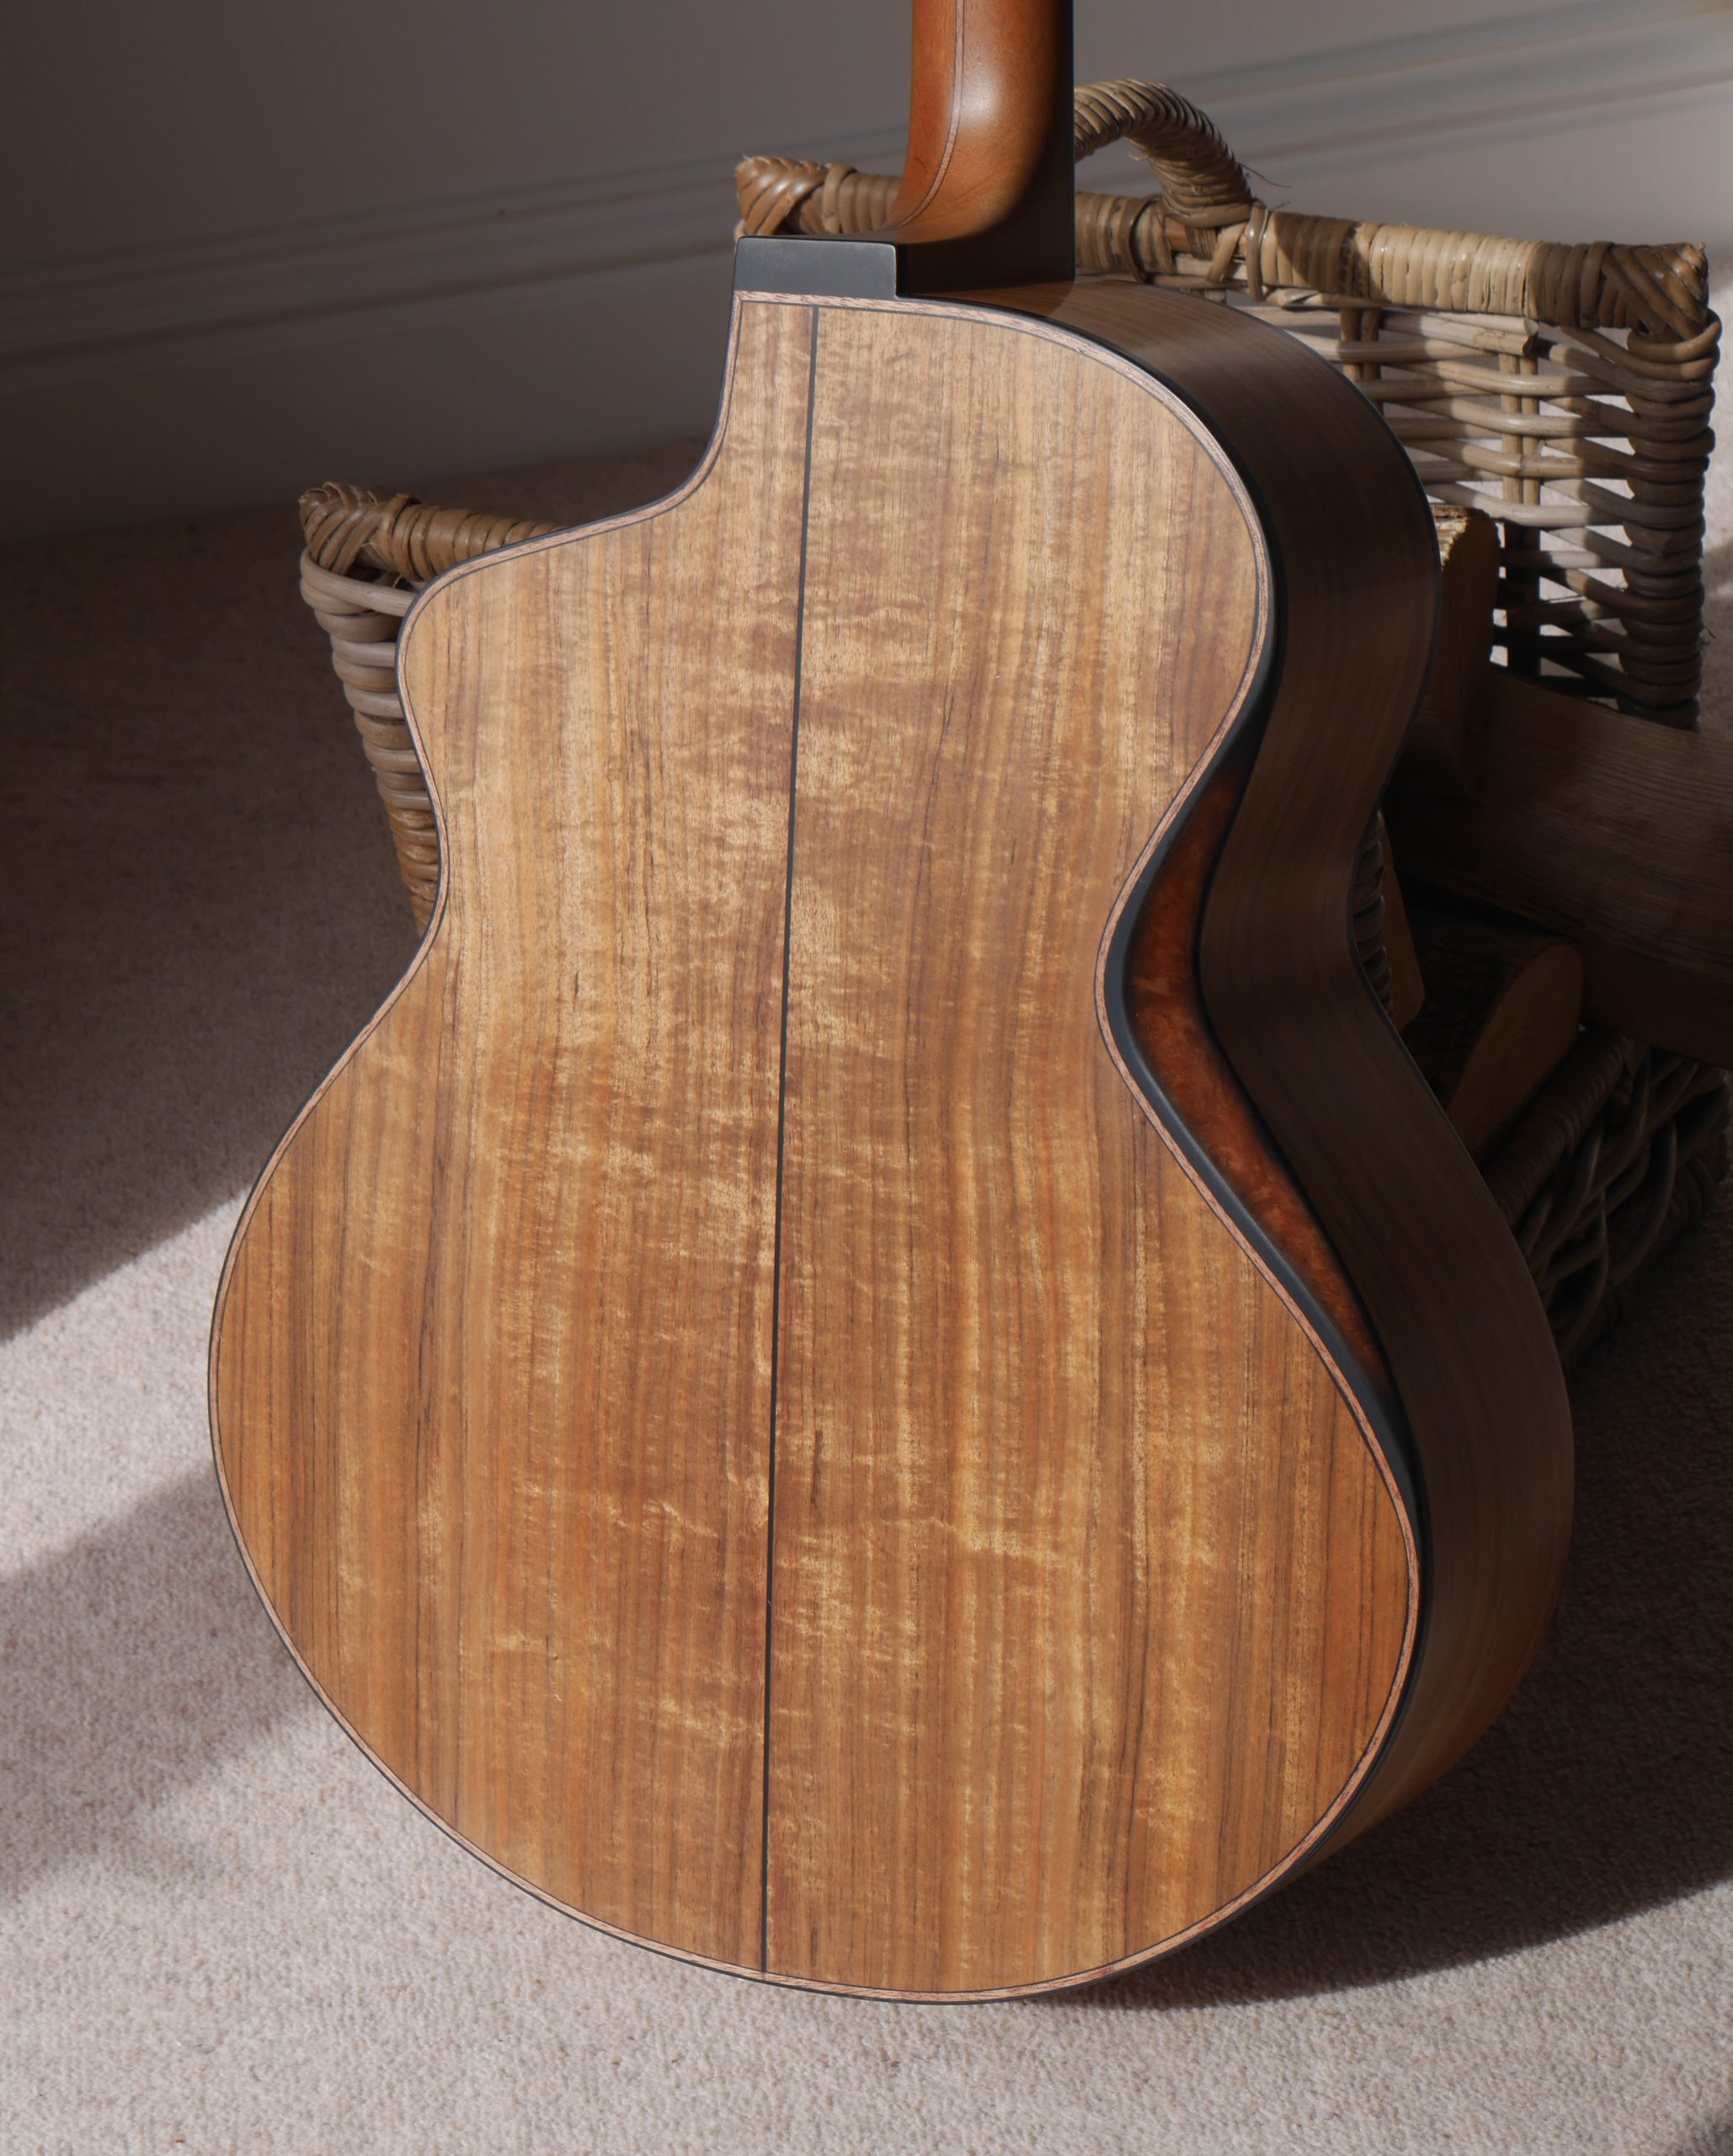 rib bevel, montgomery guitars, acoustic guitar, andreas montgomery, luthier, handmade, northern ireland